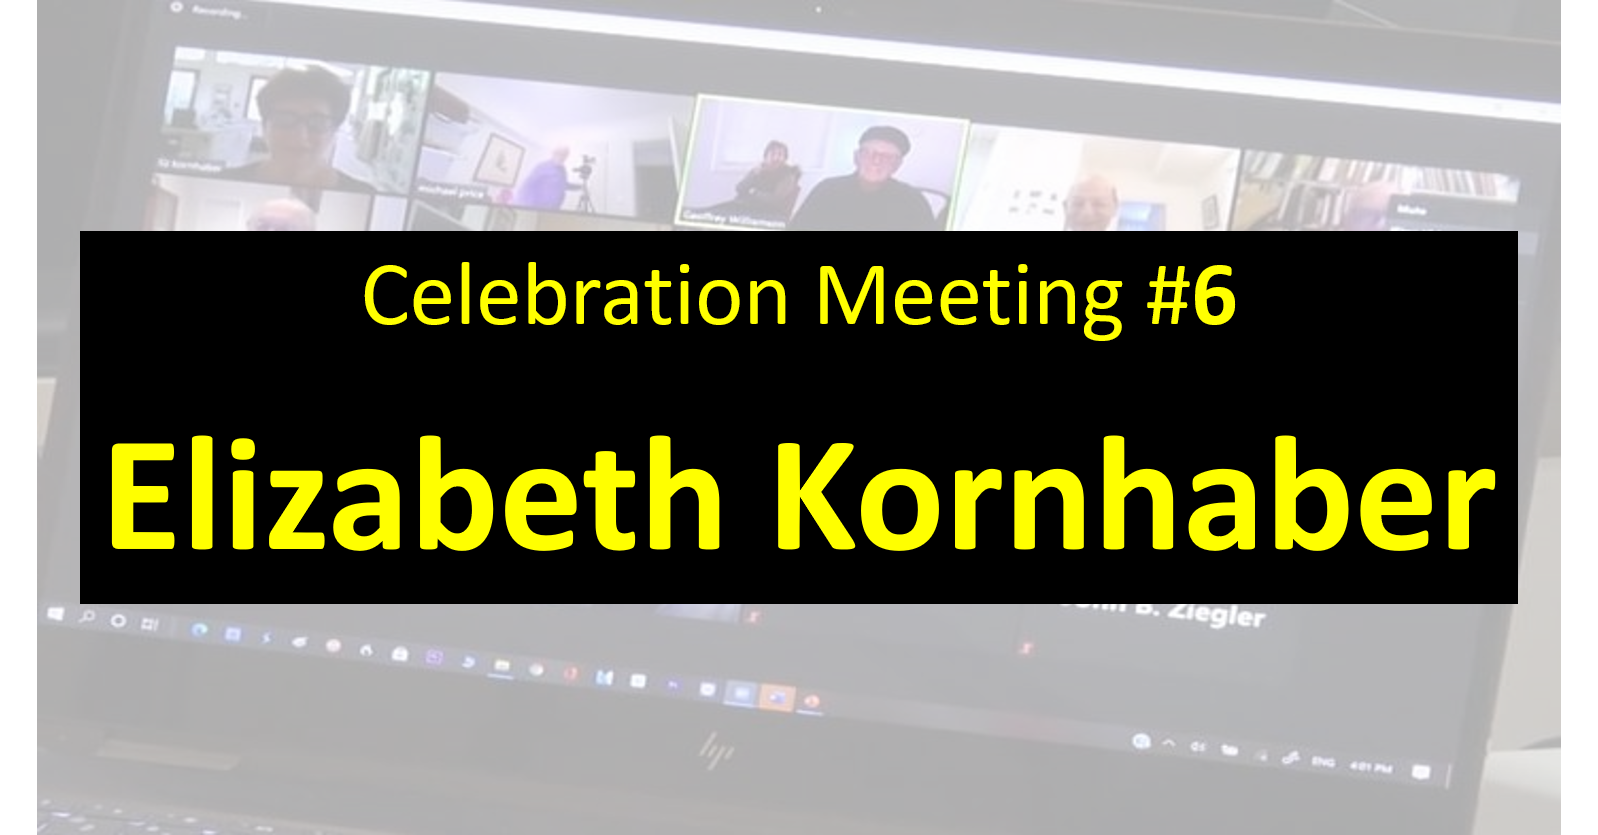 Celebration Meeting - #6 Elizabeth Kornhaber